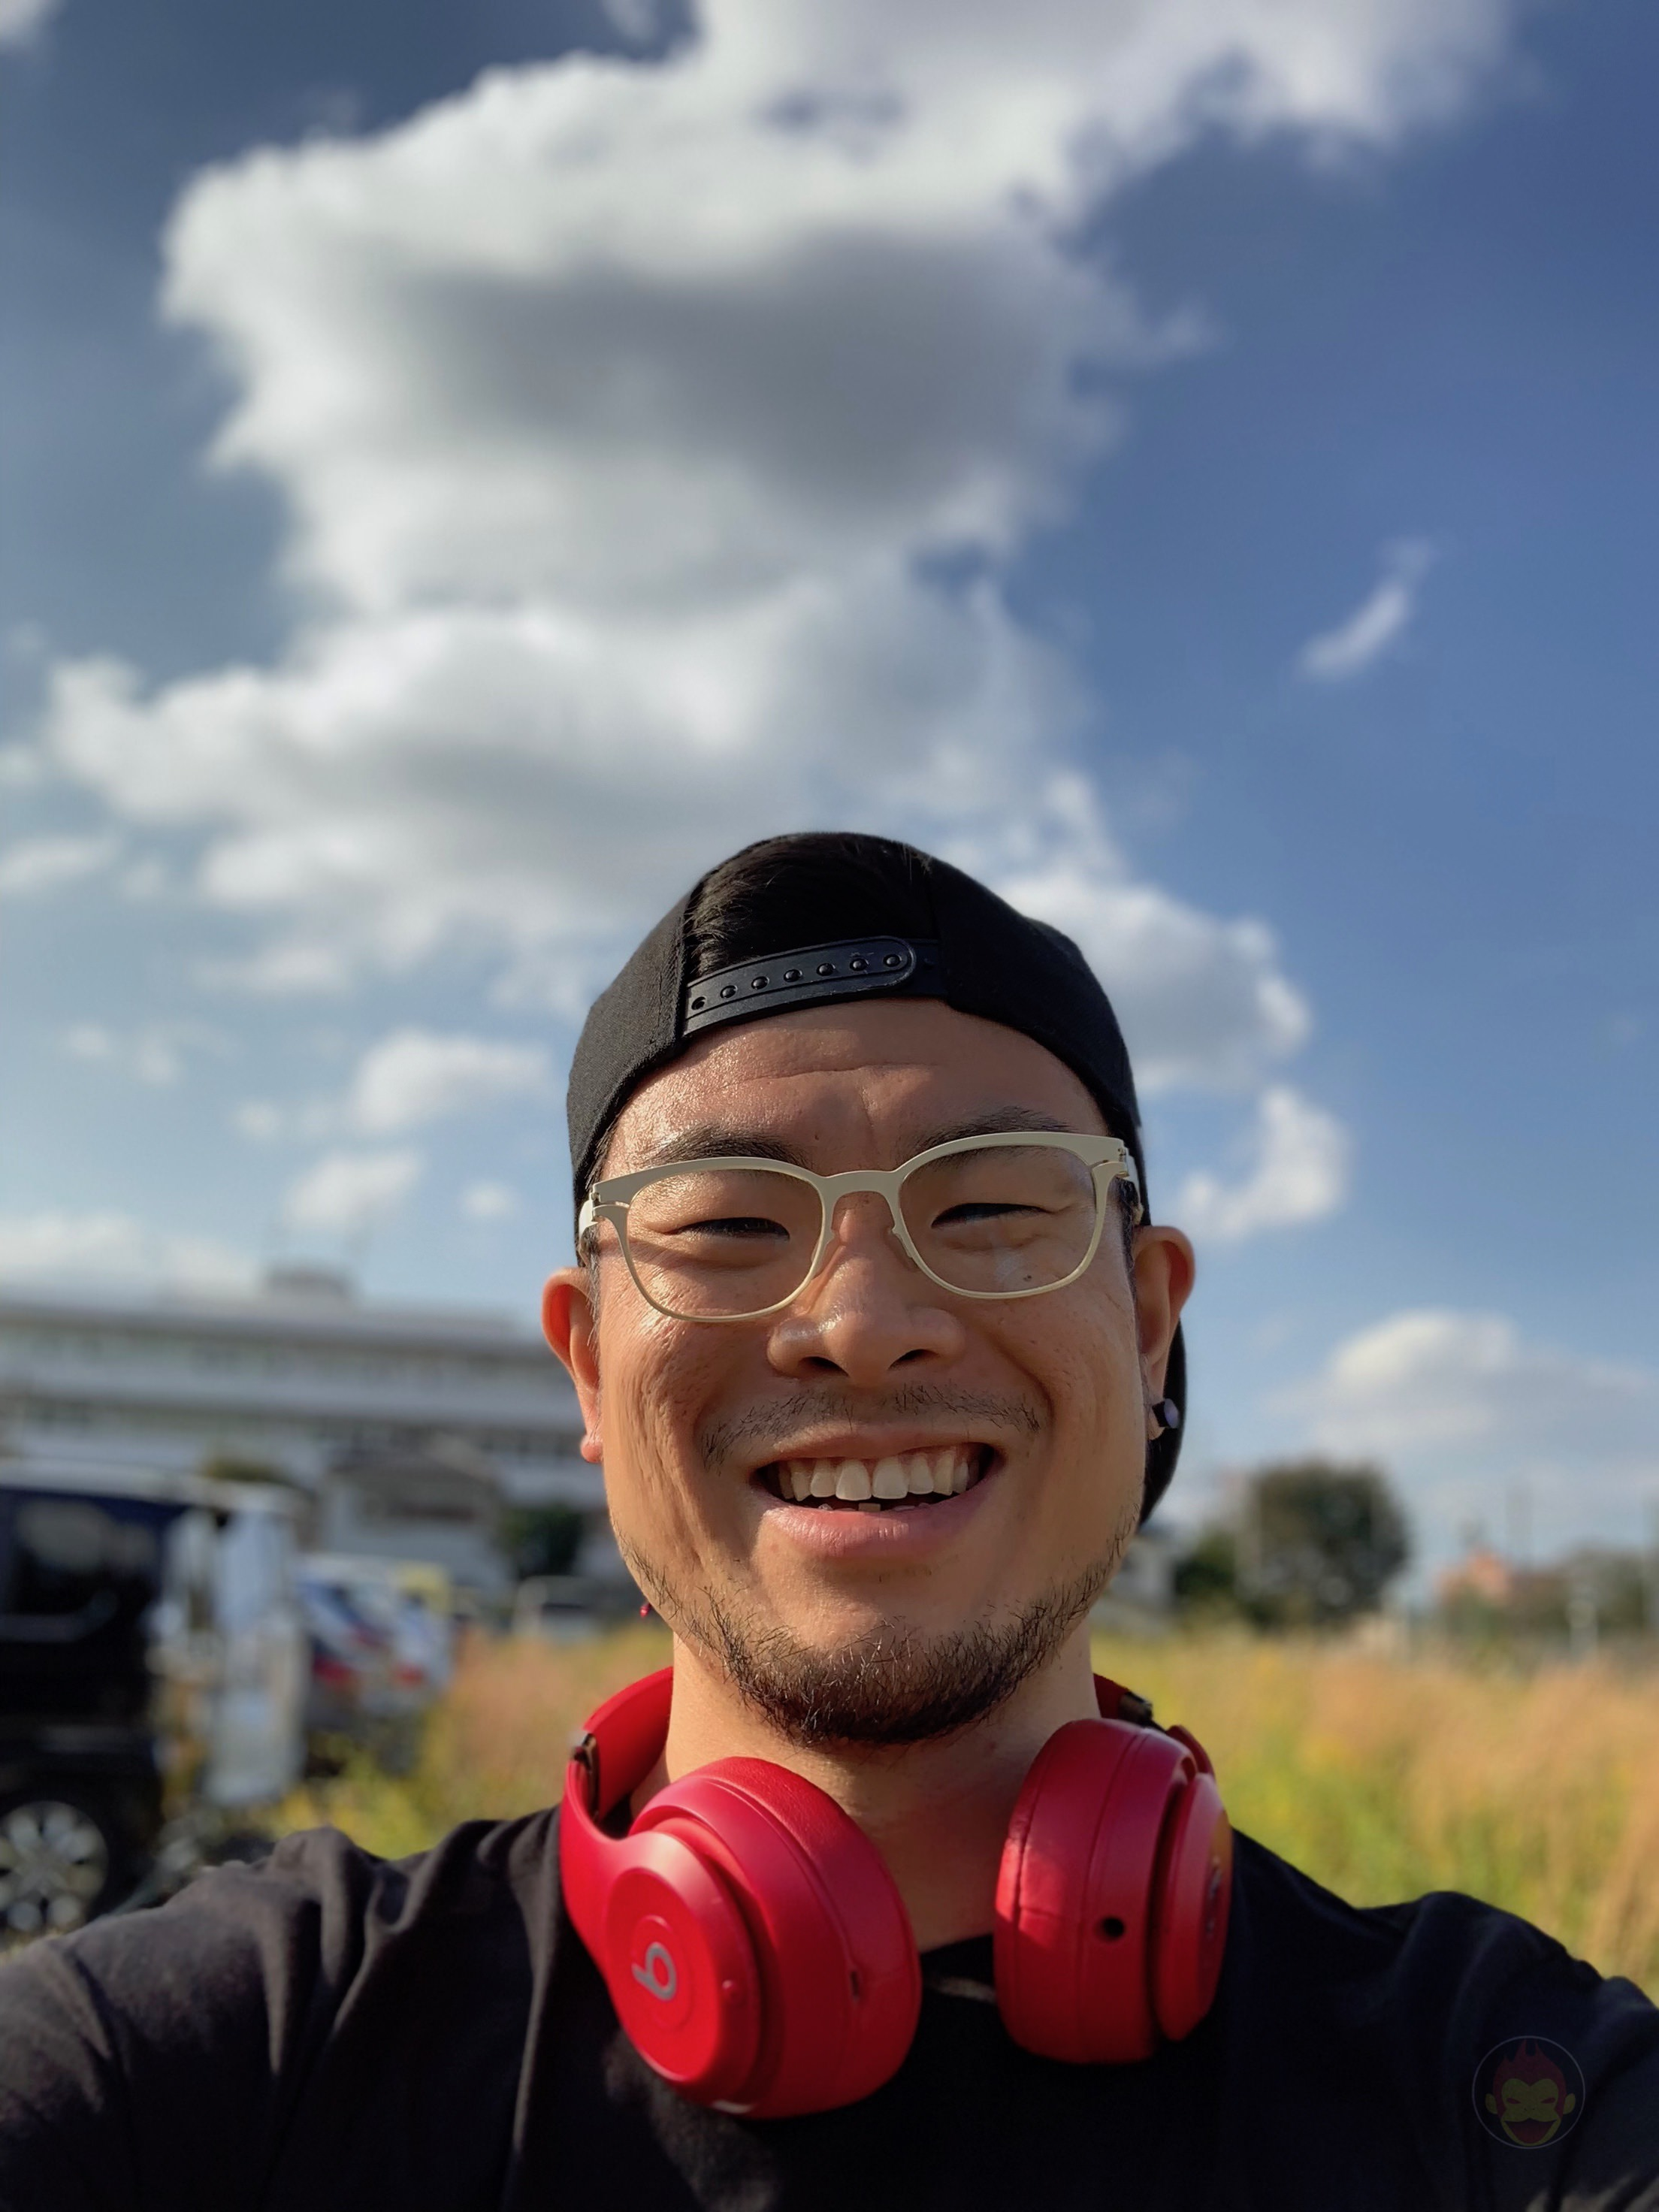 iPhone-XR-Selfie-Comparison-03.jpg